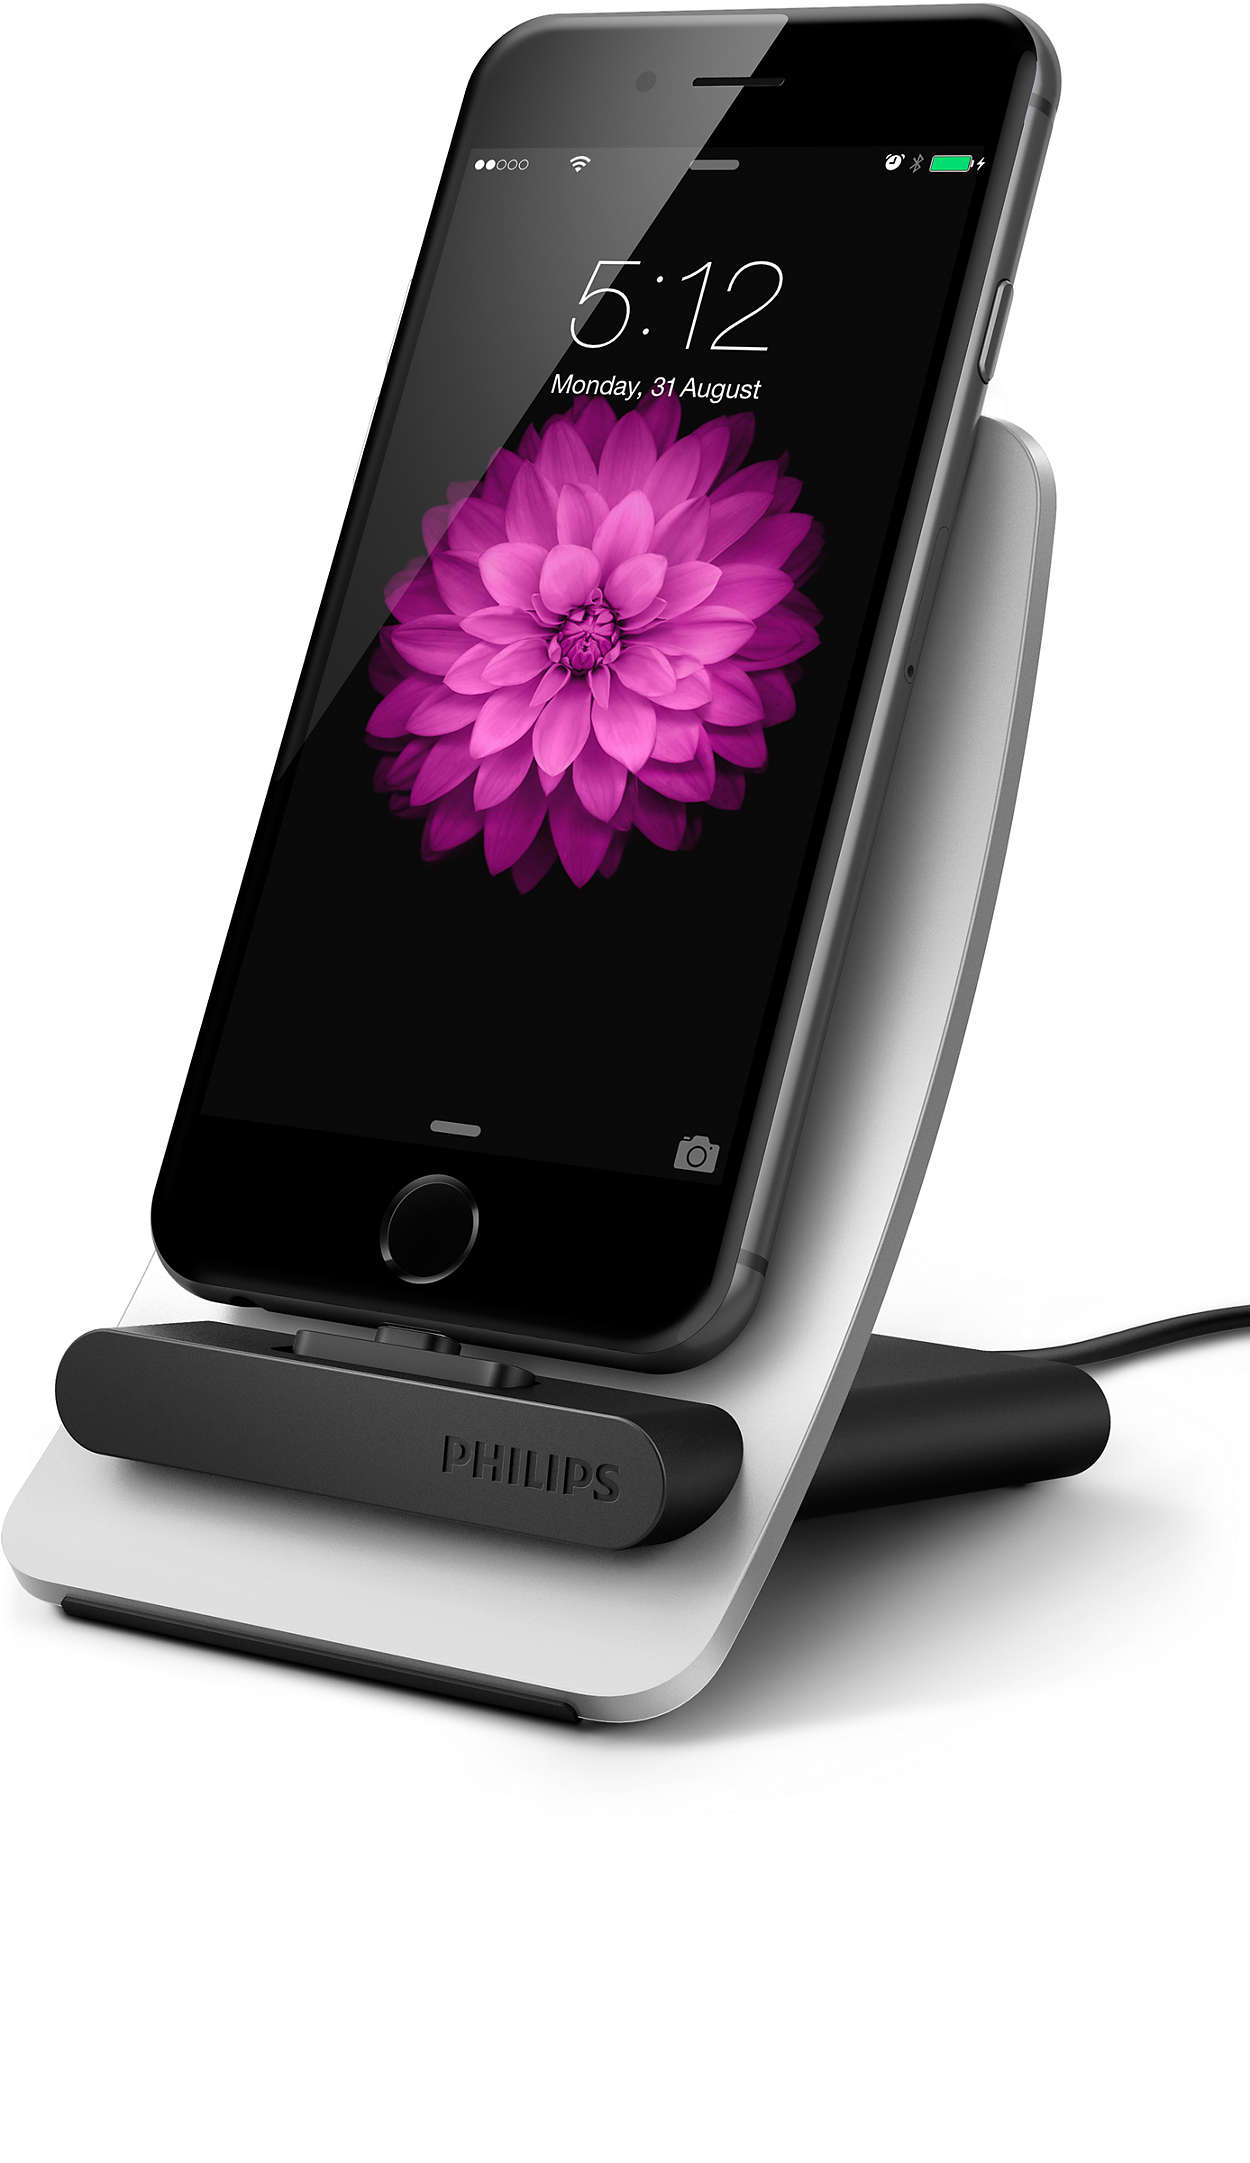 iPhone-Dockingstation